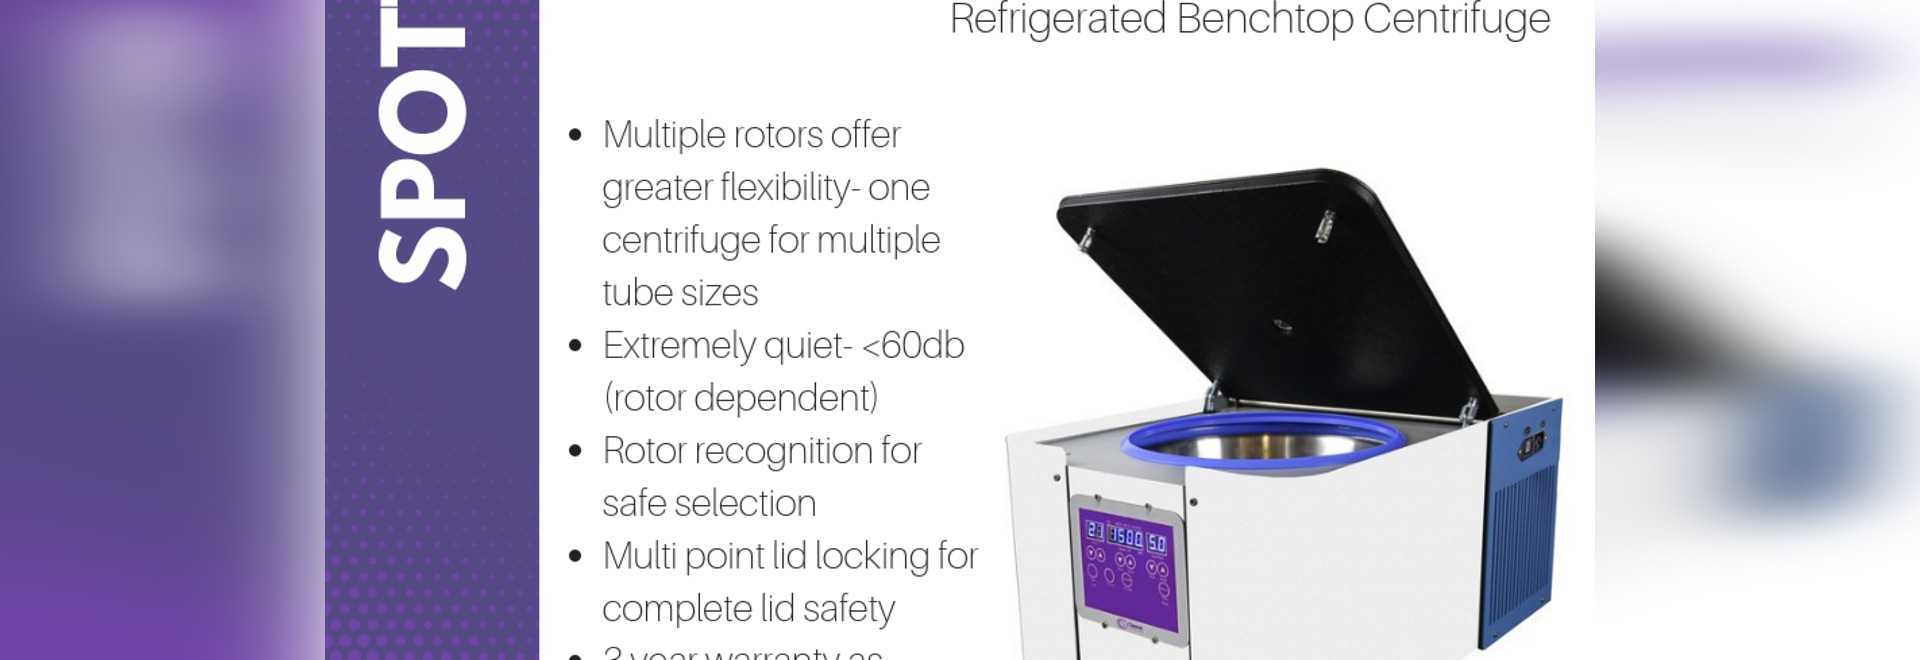 SPOTTED- multiSPIN Refrigerated Benchtop Centrifuge